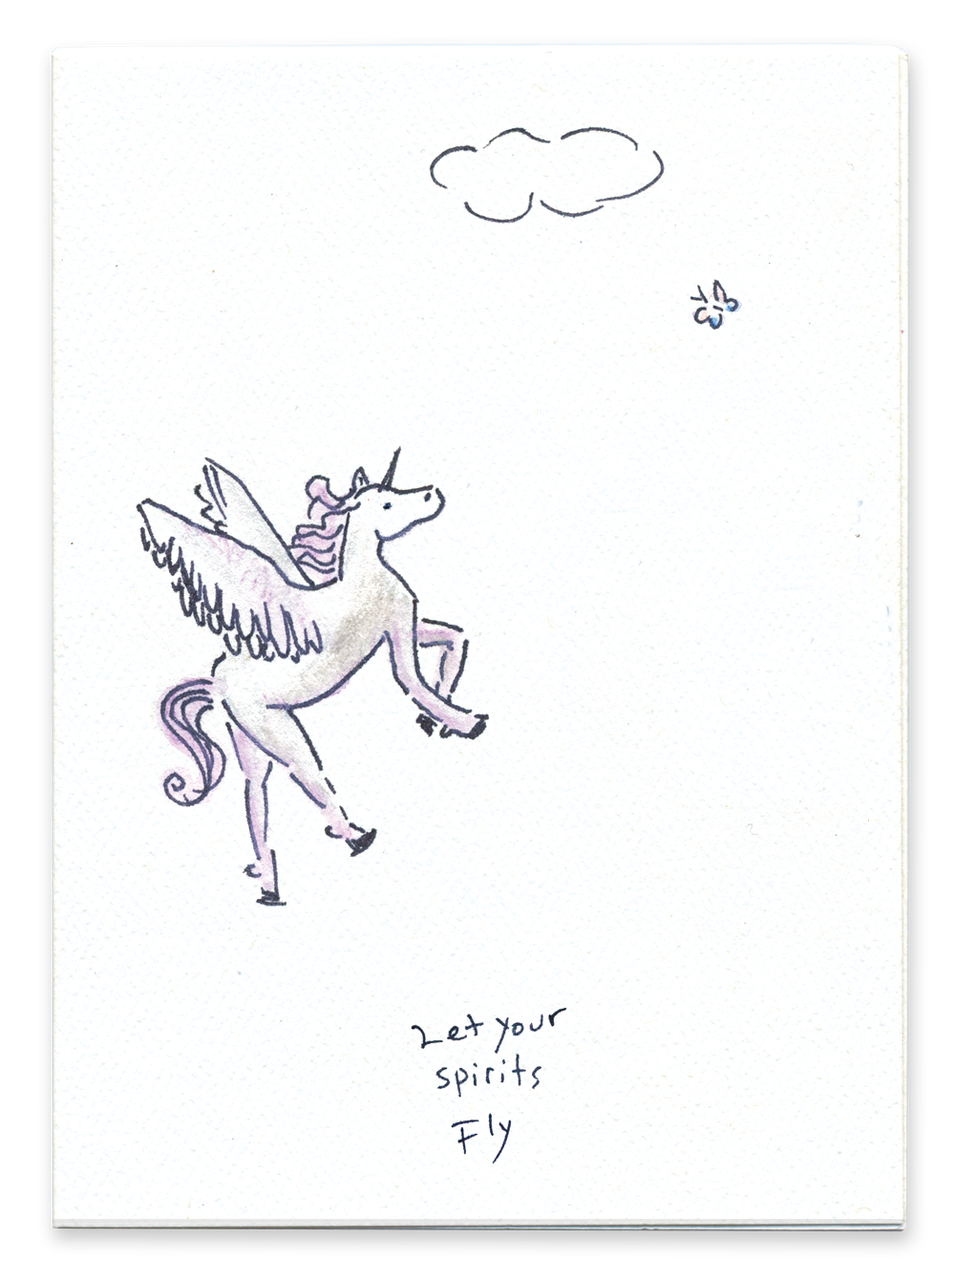 Let Your Spirits Fly